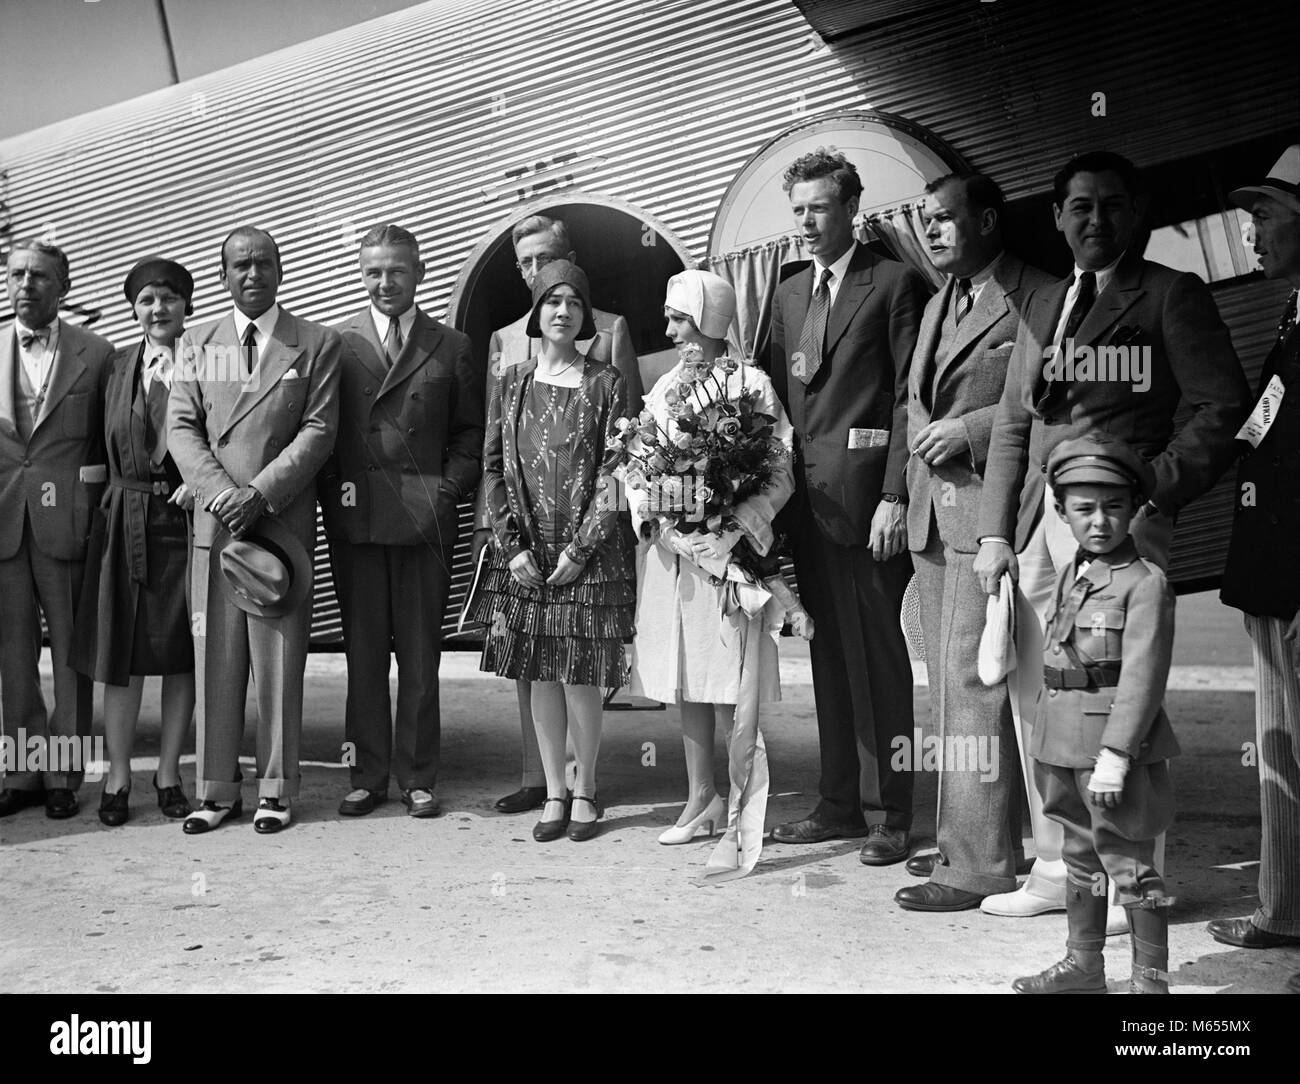 1920s AVIATOR CHARLES LINDBERGH AND HIS WIFE ANNE STANDING BY AIRPLANE WITH GROUP OF PEOPLE ON INAUGURAL FLIGHT - Stock Image